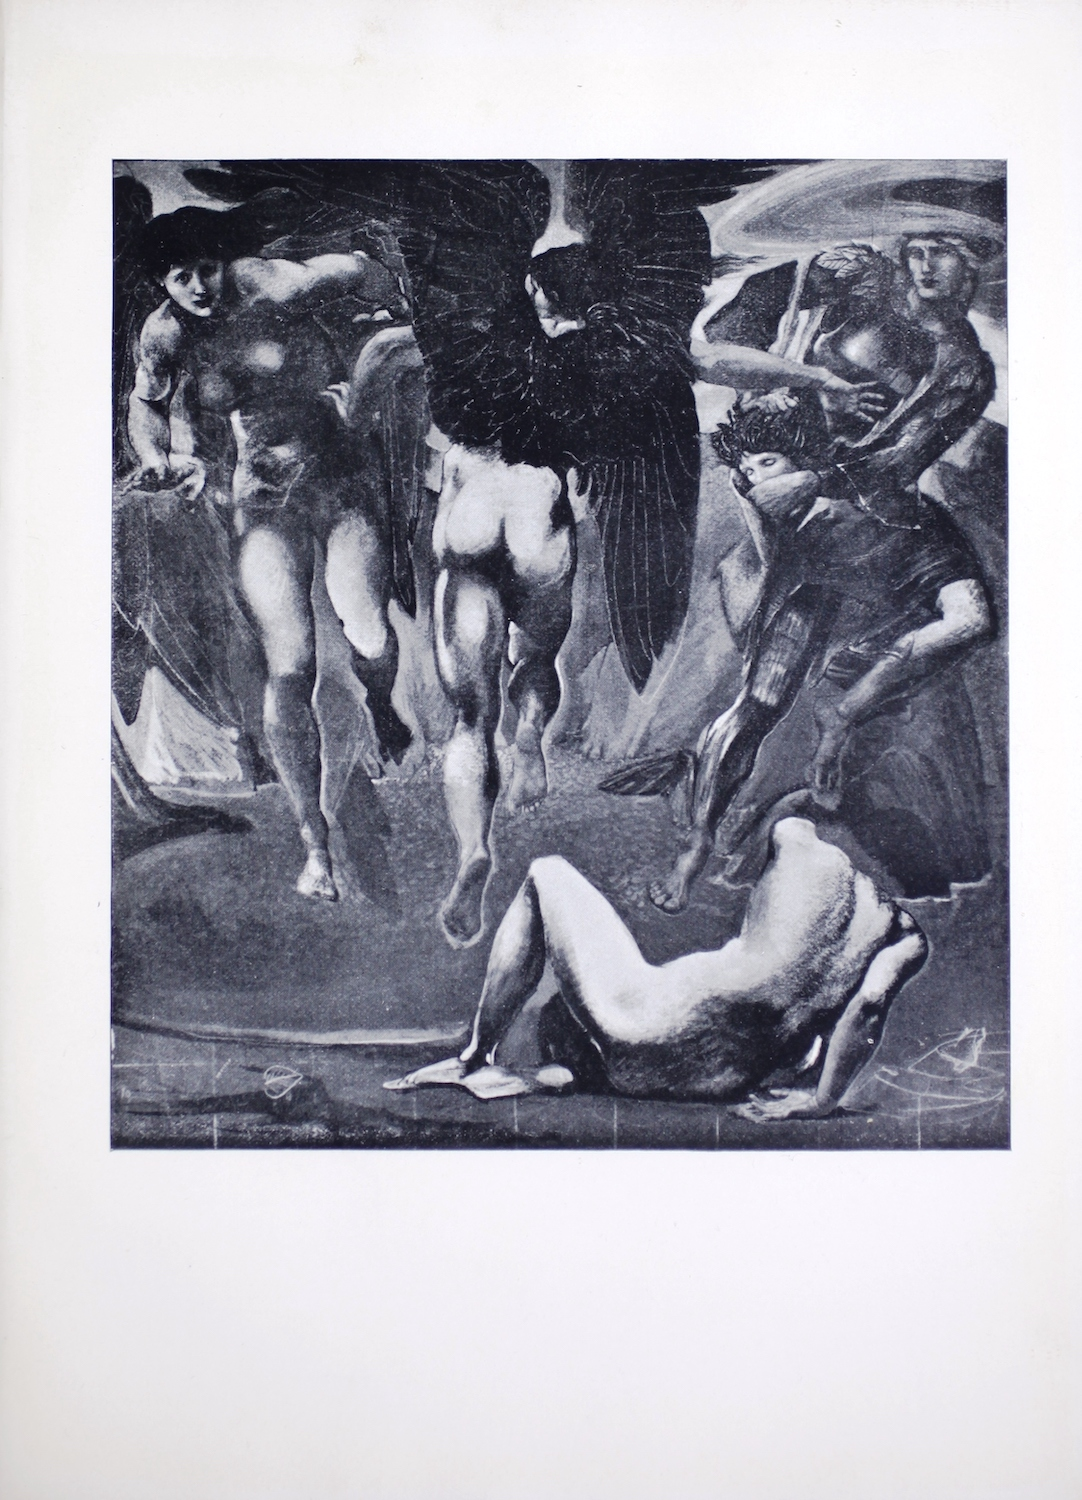 """Also known as """"The Death of Medusa II,"""" this painting, reproduced in halftone, is from a series of ten commissioned in 1875 by Sir Arthur Balfour for his music room. Displayed in portrait orientation, this image depicts the moment after Perseus cuts off the head of the Medusa. At the centre of the image is the back of one of Medusa's two winged sisters. We see her lower body and dark wings spread out as she takes flight to find her sister's murderer. At left is the second winged sister, facing the viewer and looking down at the ground at the headless corpse in the bottom right. Above the corpse is Perseus, wearing armour and his helmet of invisibility. A swirl of cloud surrounds his helmet as if to signify his invisibility. He is carrying Medusa's head and looks at the two sisters while leaping away from them and towards the right frame of the image. Occupying the extreme foreground in the bottom right half of the picture is the body of the Medusa, now headless, with its back to the viewer. Her left foot is flat to the ground; her leg is bent with its knee in the air. Her hip rests on the ground while her right arm has twisted behind her back, propping her upper body up on the back of her right hand and wrist. The left arm is not visible. The background for the lower half the image depicts a lake or pool of water in front of a range of large mountains."""